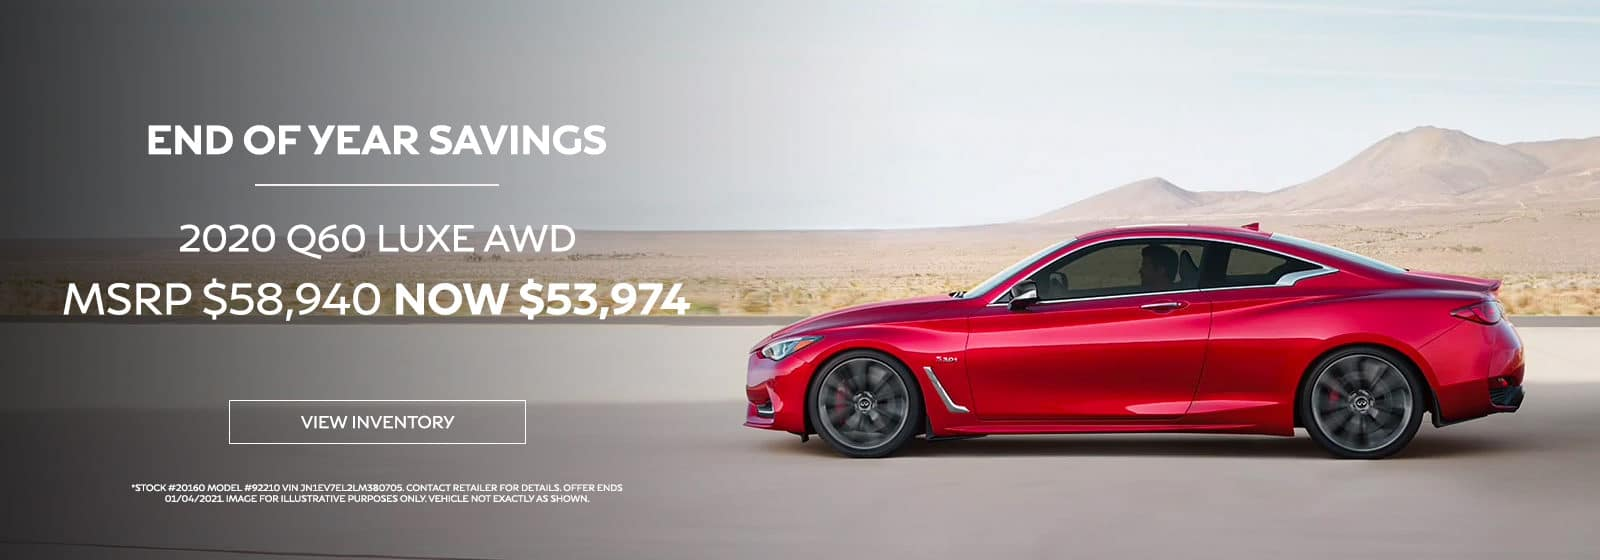 END OF YEAR SAVINGS 2020 Q60 LUXE AWD MSRP $58,940 NOW $53,974